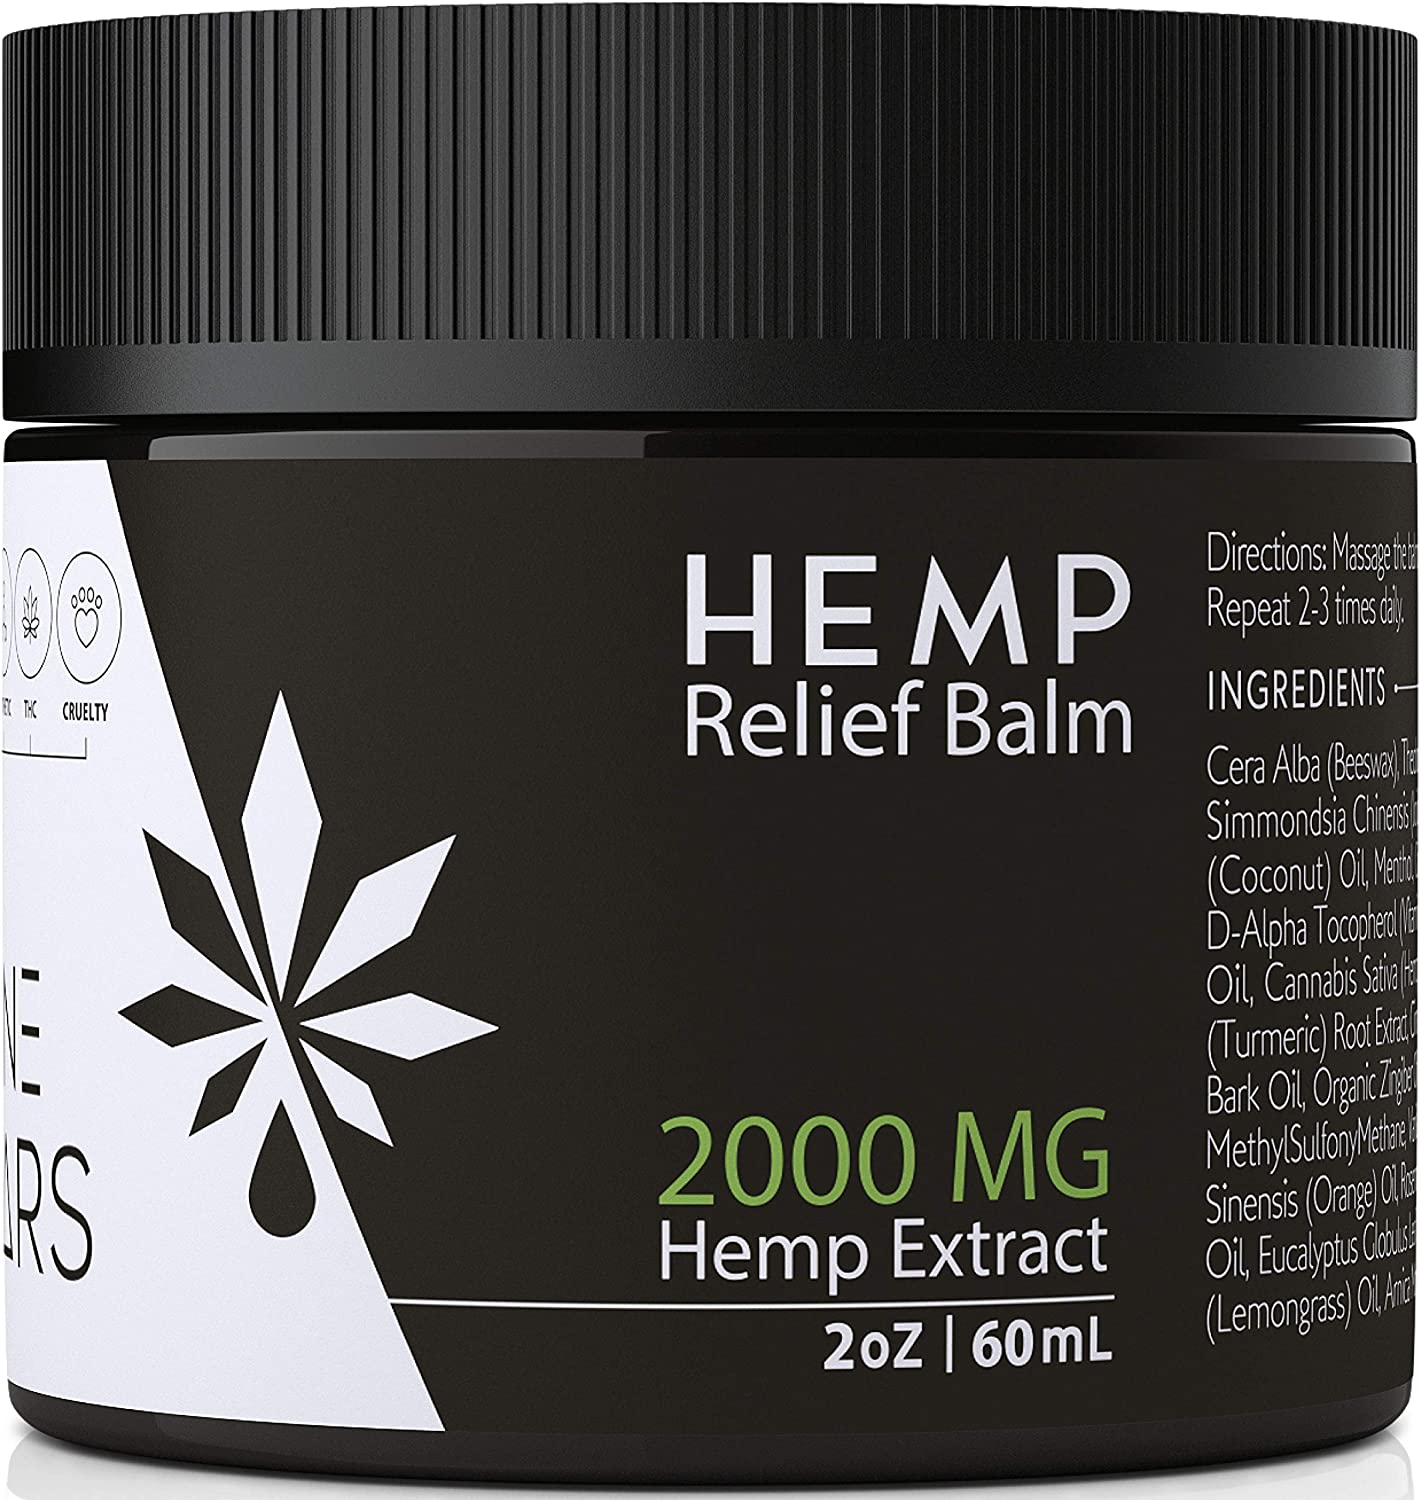 Divine Nectars Pain Relief Hemp Balm 2000 MG Hemp Salve for Pain Pain Relief for Back Pain Sciatica Nerve Fibromyalgia Shoulder Joint Knee Pain Anxiety Relief